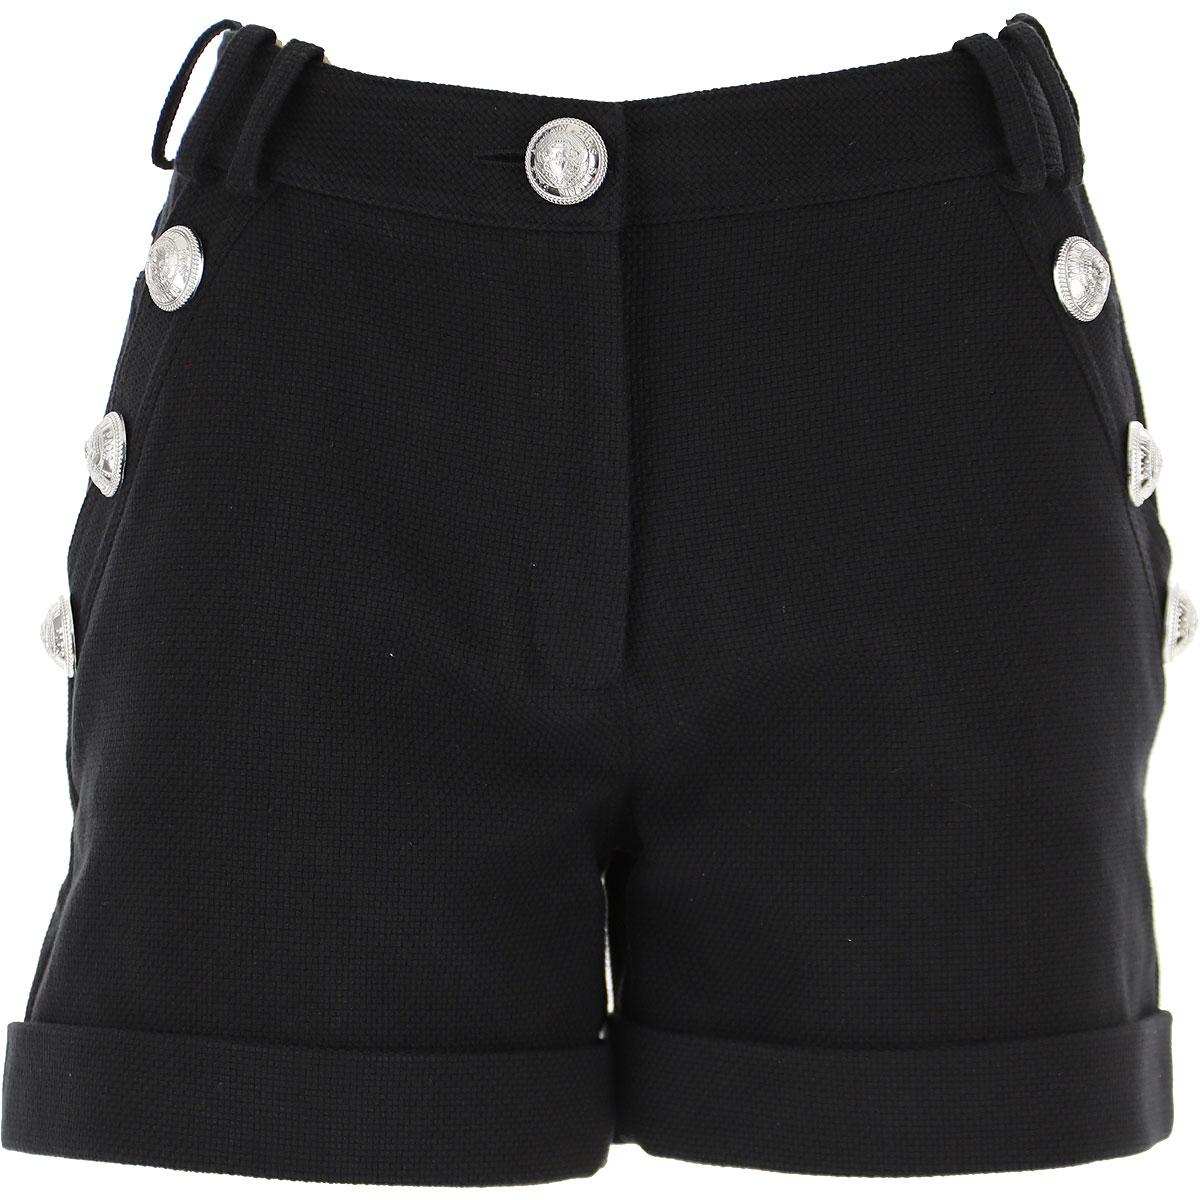 Balmain Shorts for Women On Sale, Black, Viscose, 2019, 24 26